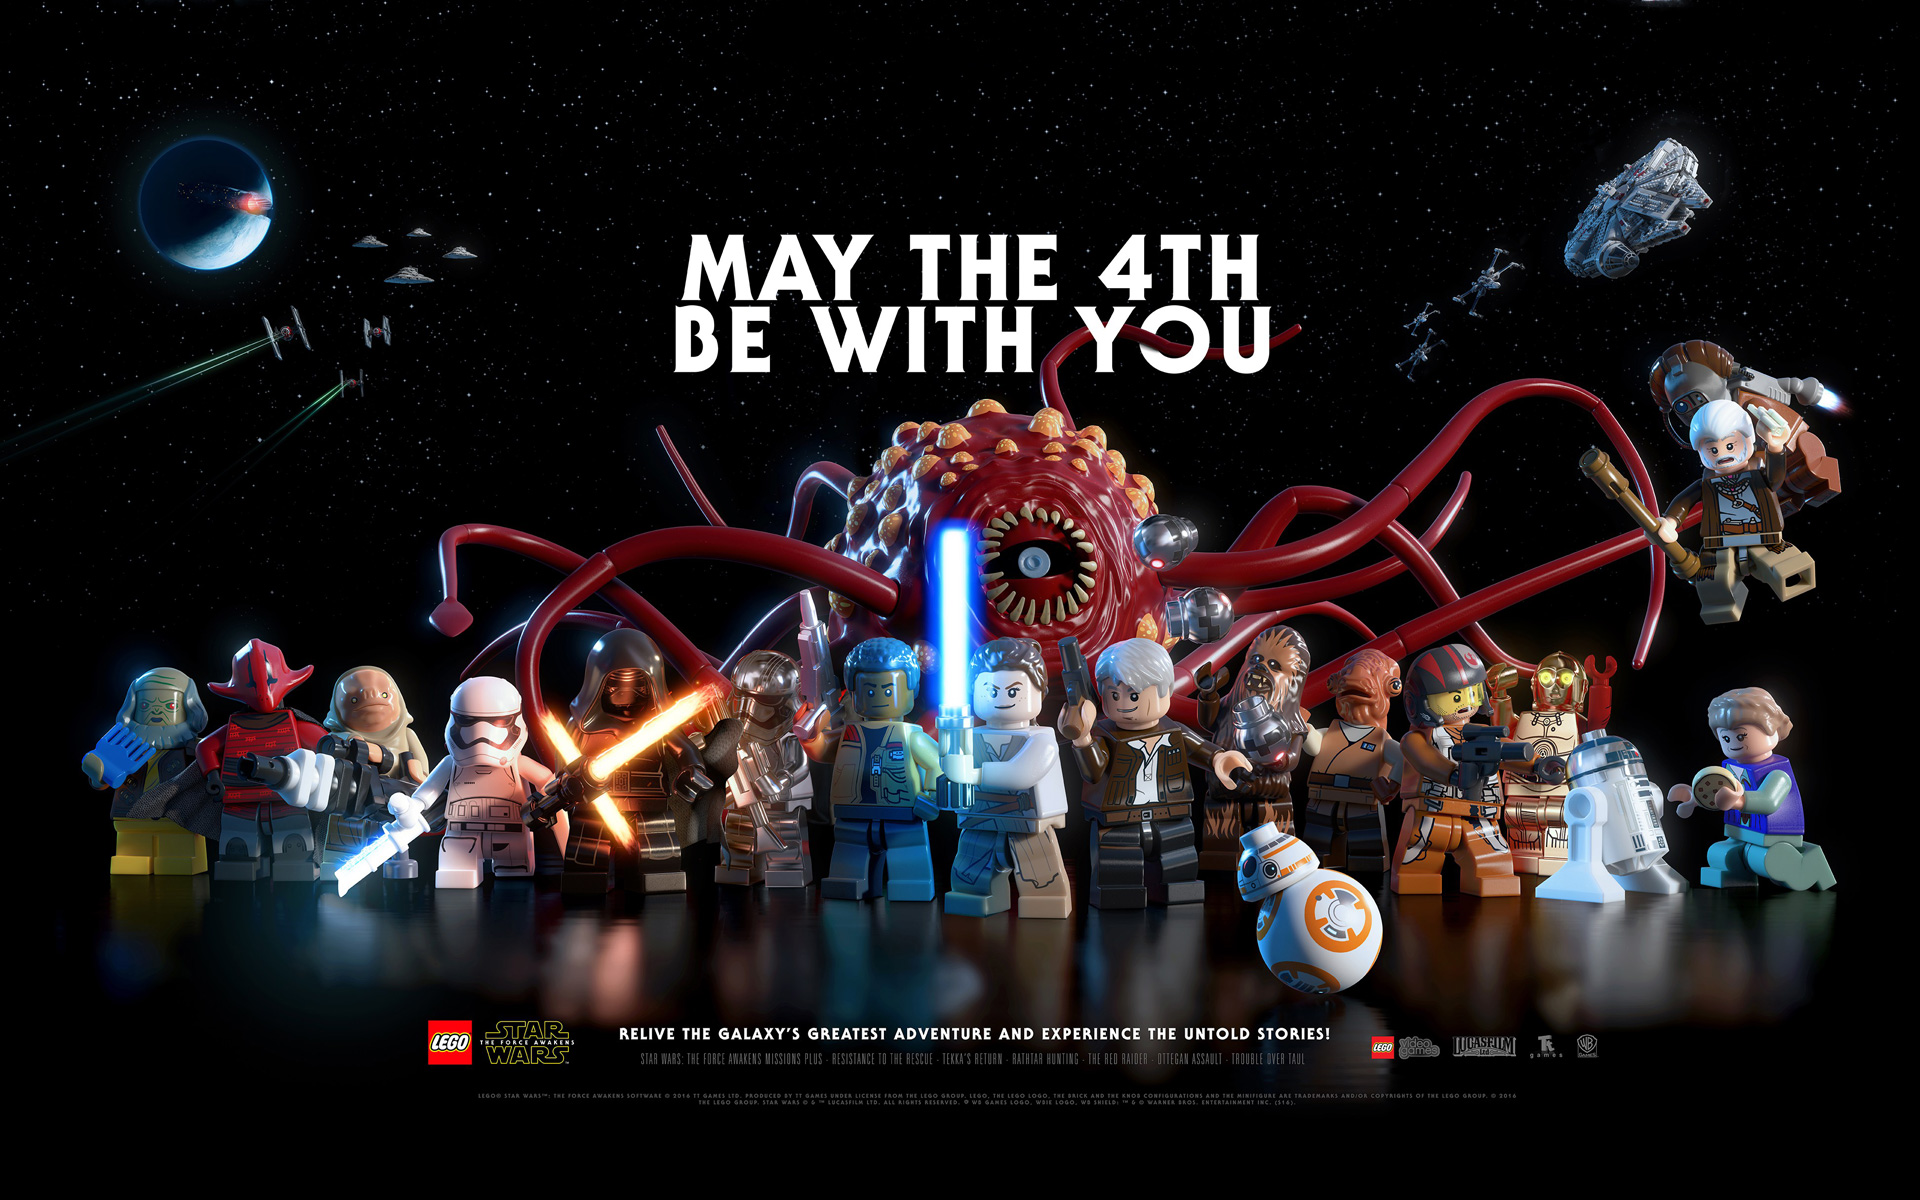 Lego Star Wars: The Force Awakens Wallpaper in 1920x1200